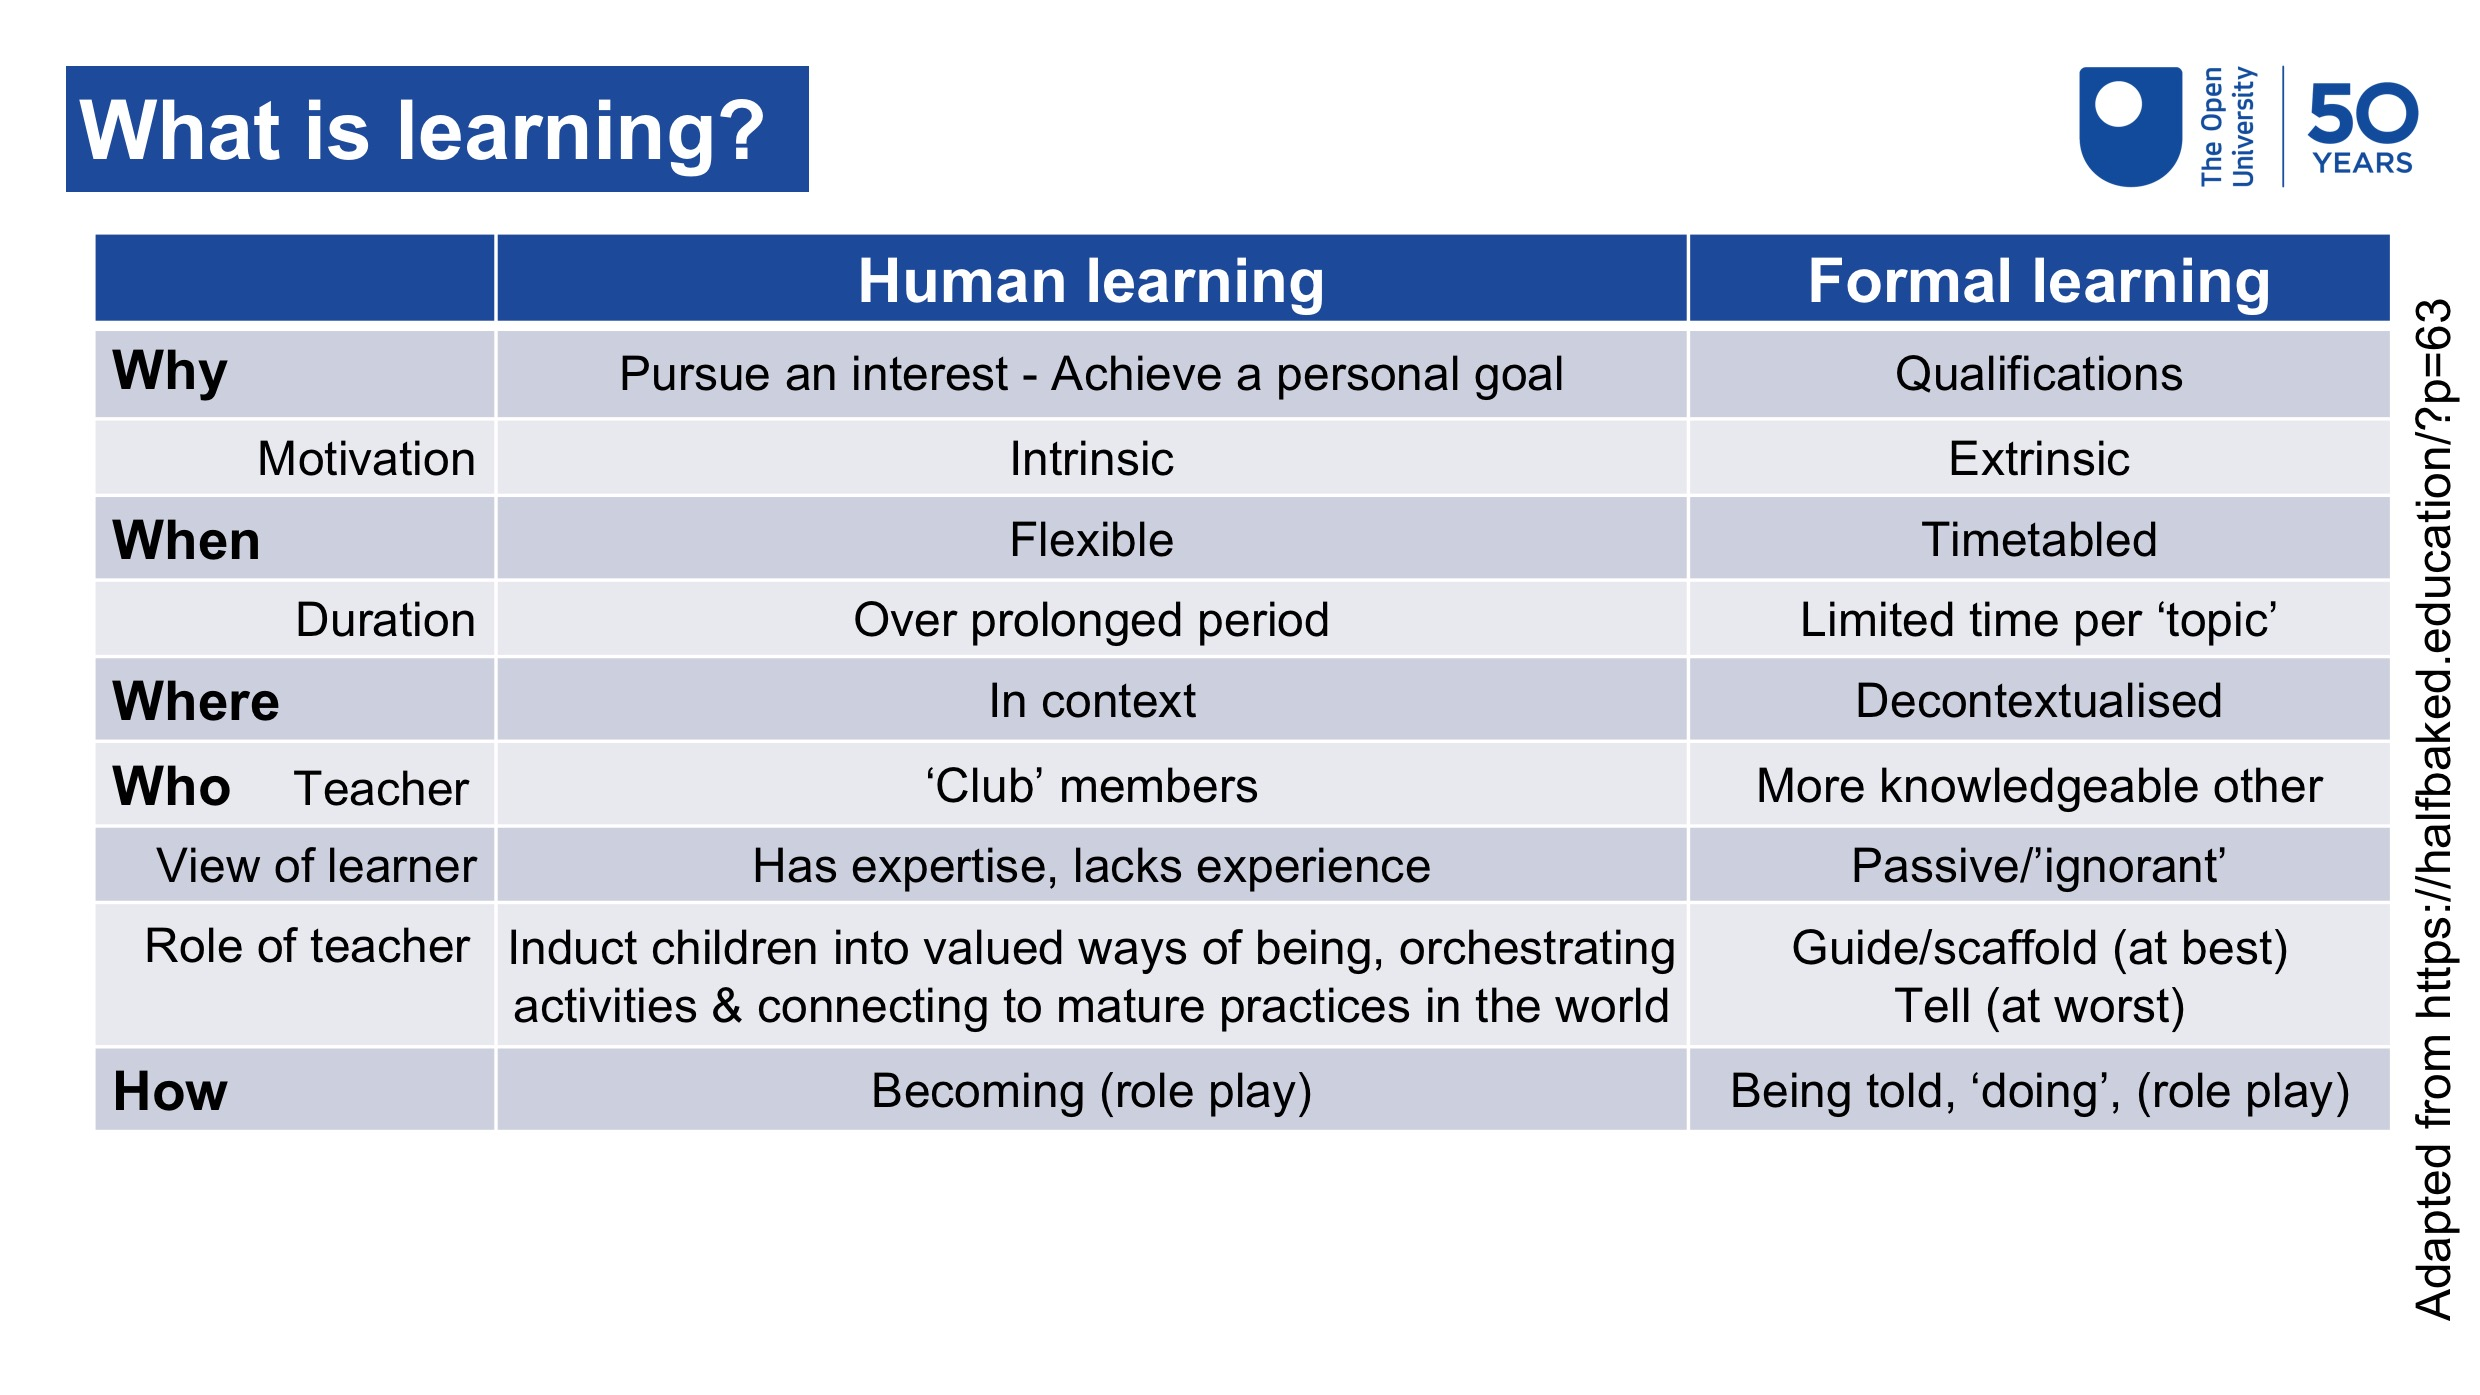 Table showing the contrasting views of human and formal learning in relation to the why, when, where, who and how of learning